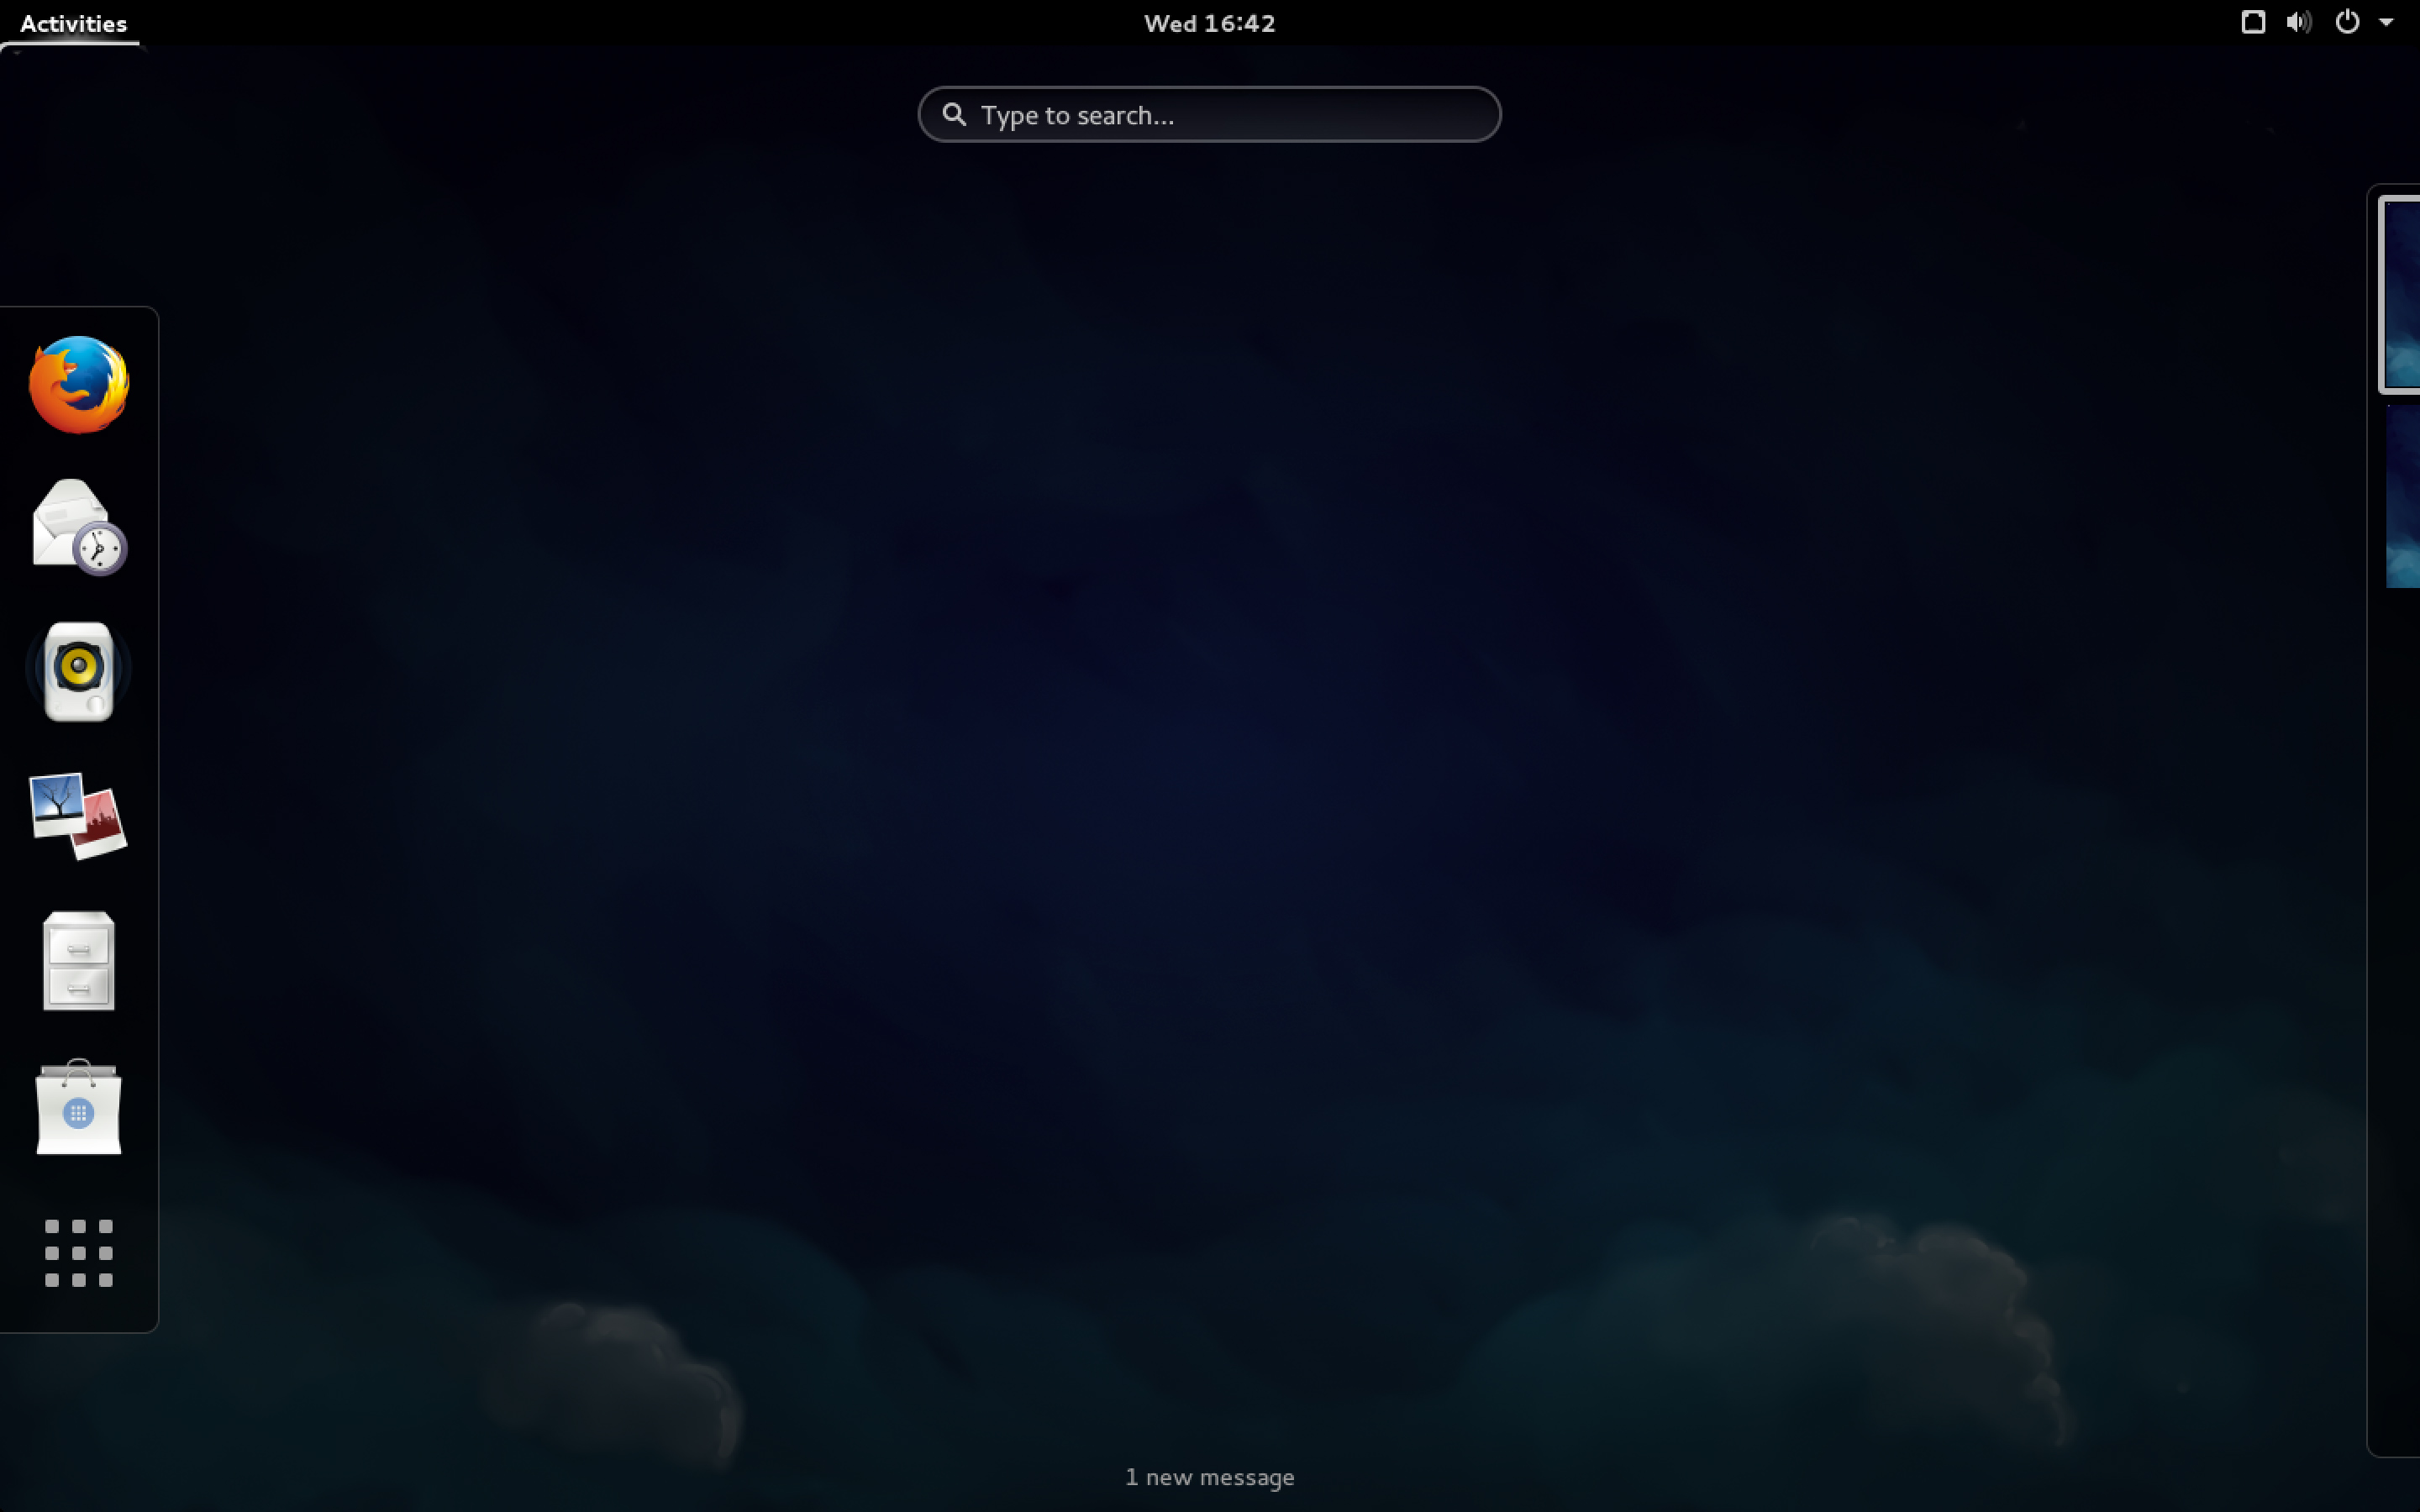 The basic GNOME Shell search screen in Fedora 21.